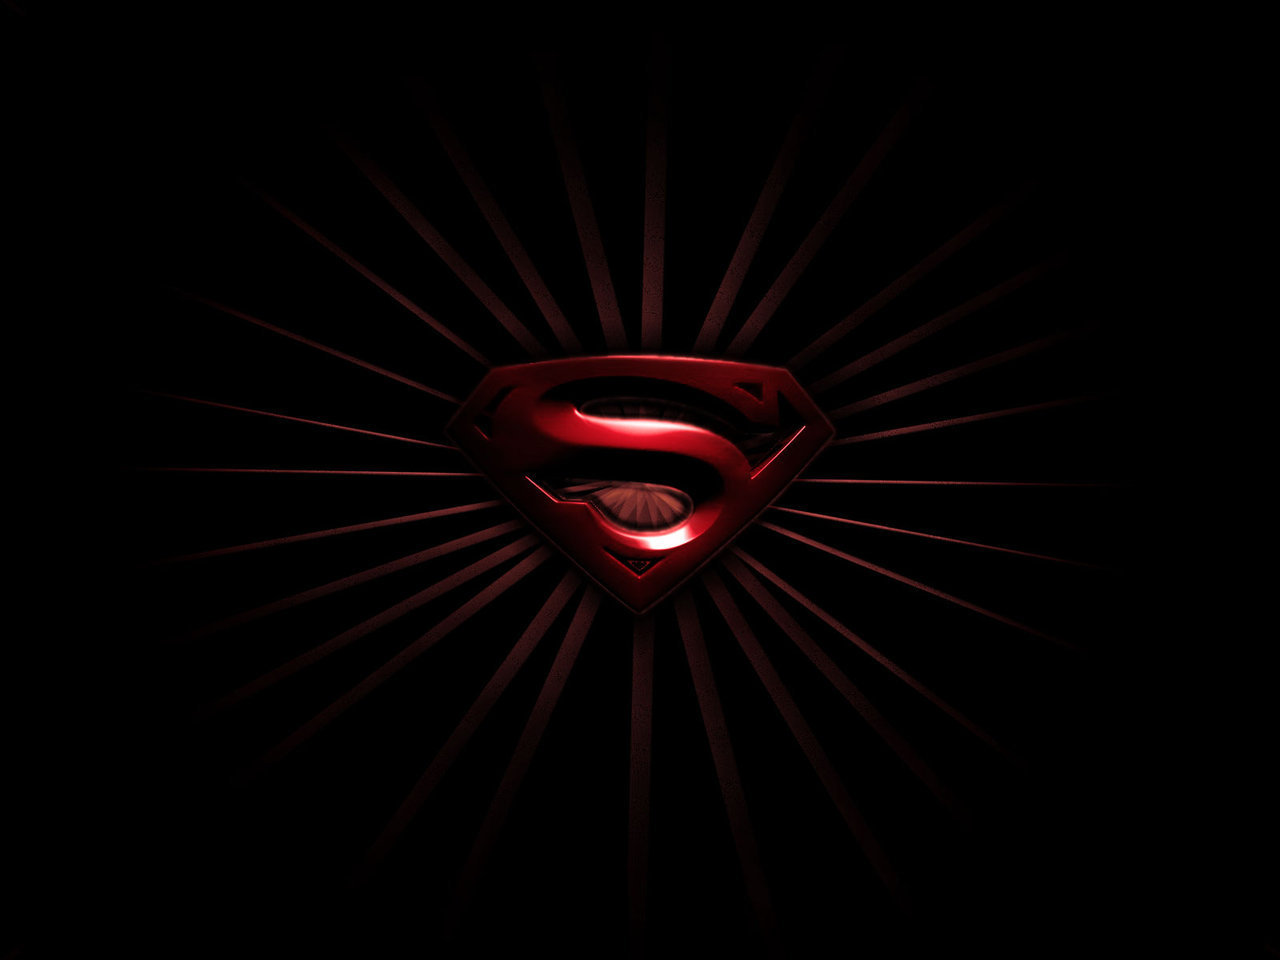 Superman Images Red Symbol Hd Wallpaper And Background Photos 3628339